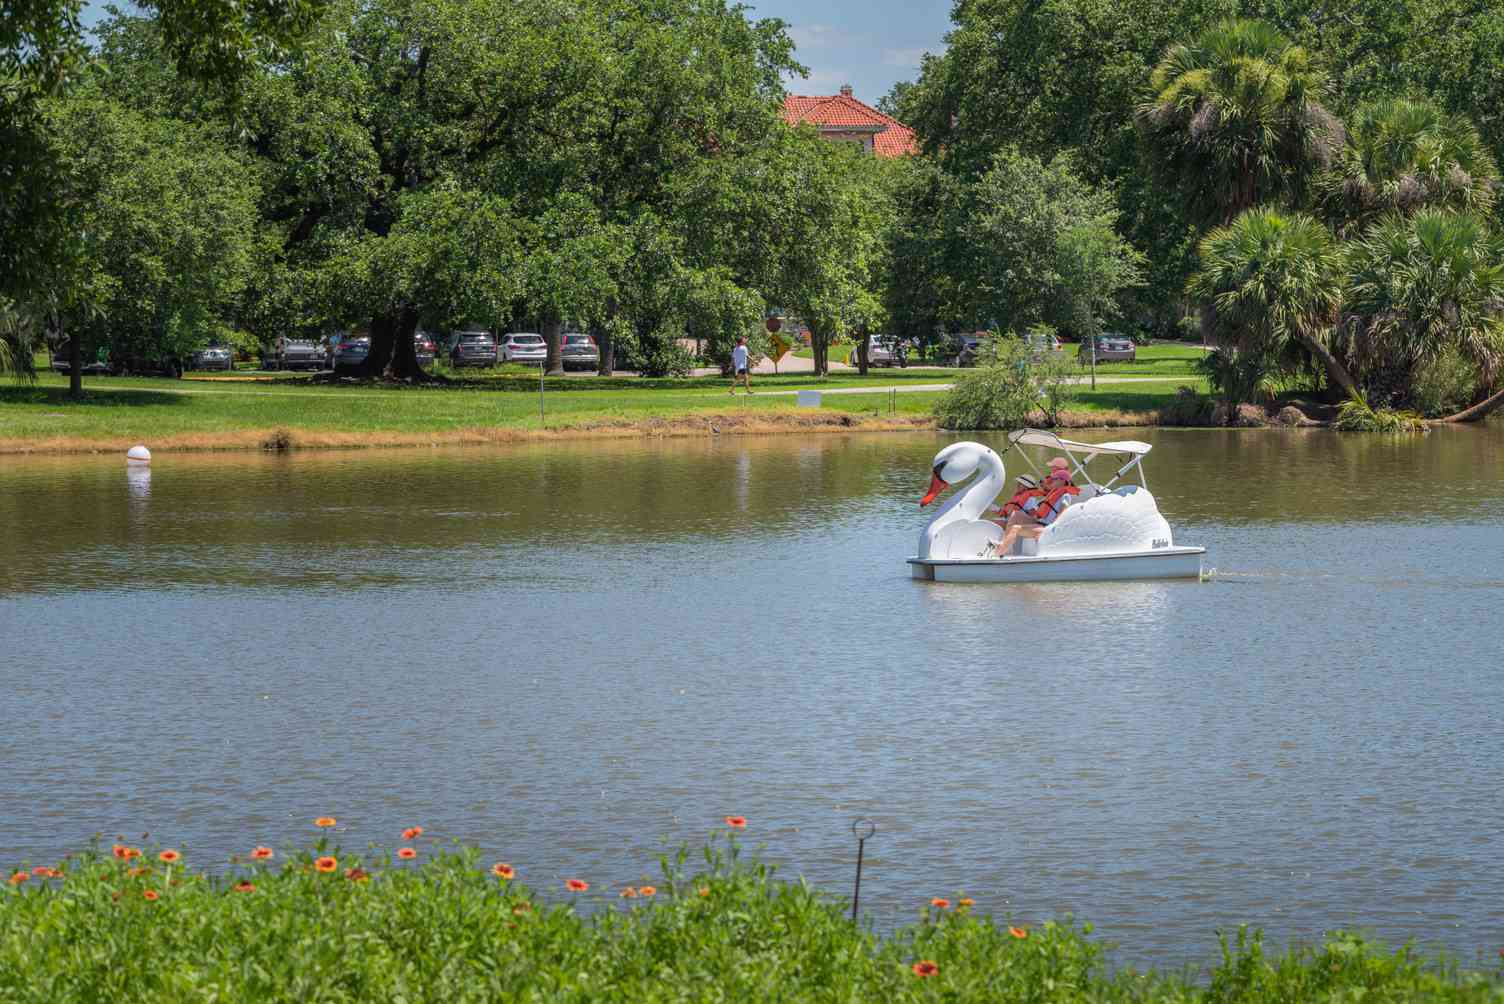 Swan paddle boat on the lake at City Park in New Orleans